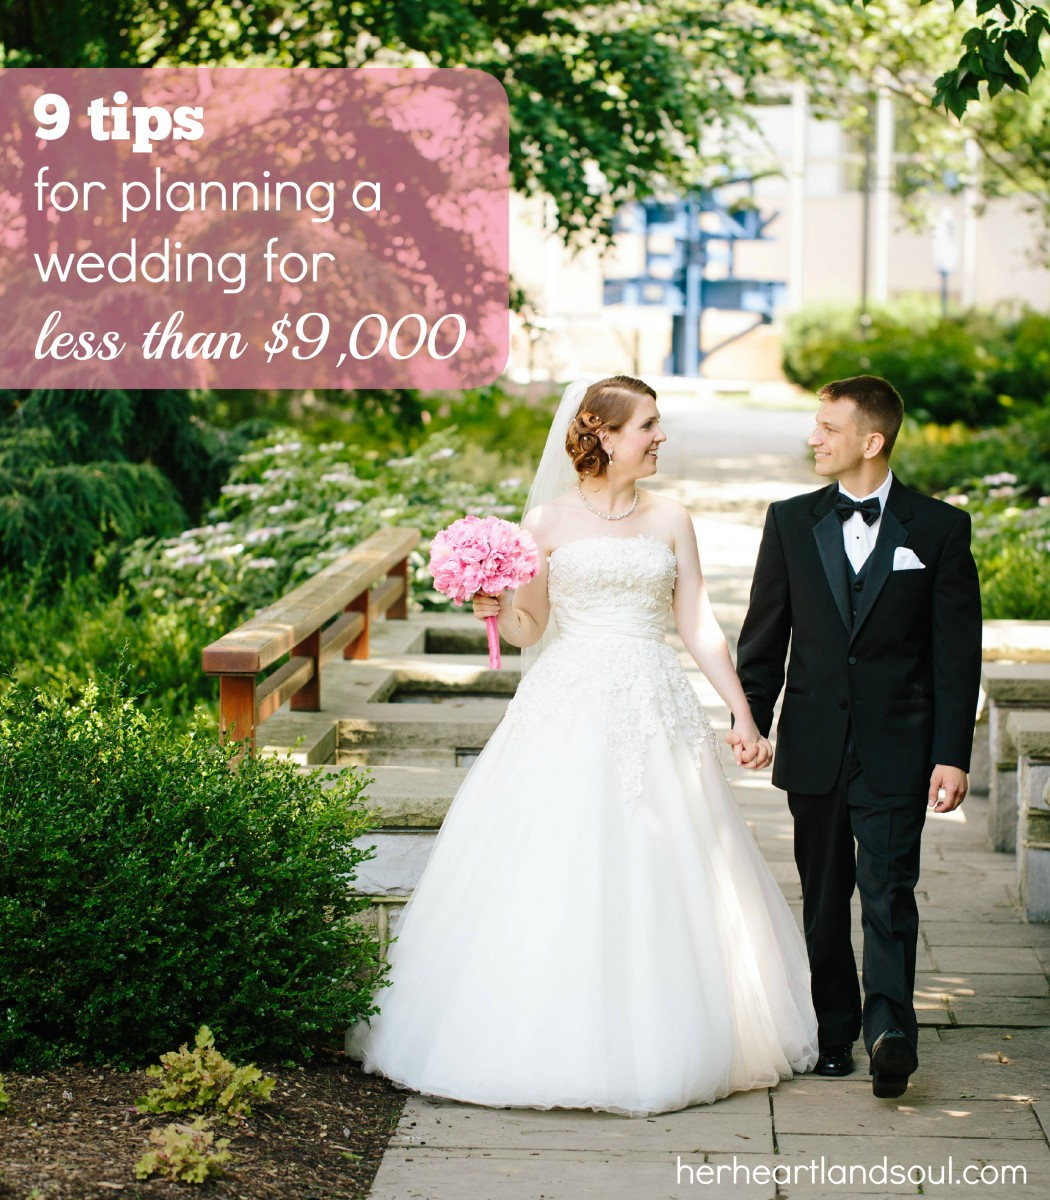 9 tips for planning a wedding for less than $9,000 Her Heartland Soul Erin Fairchild